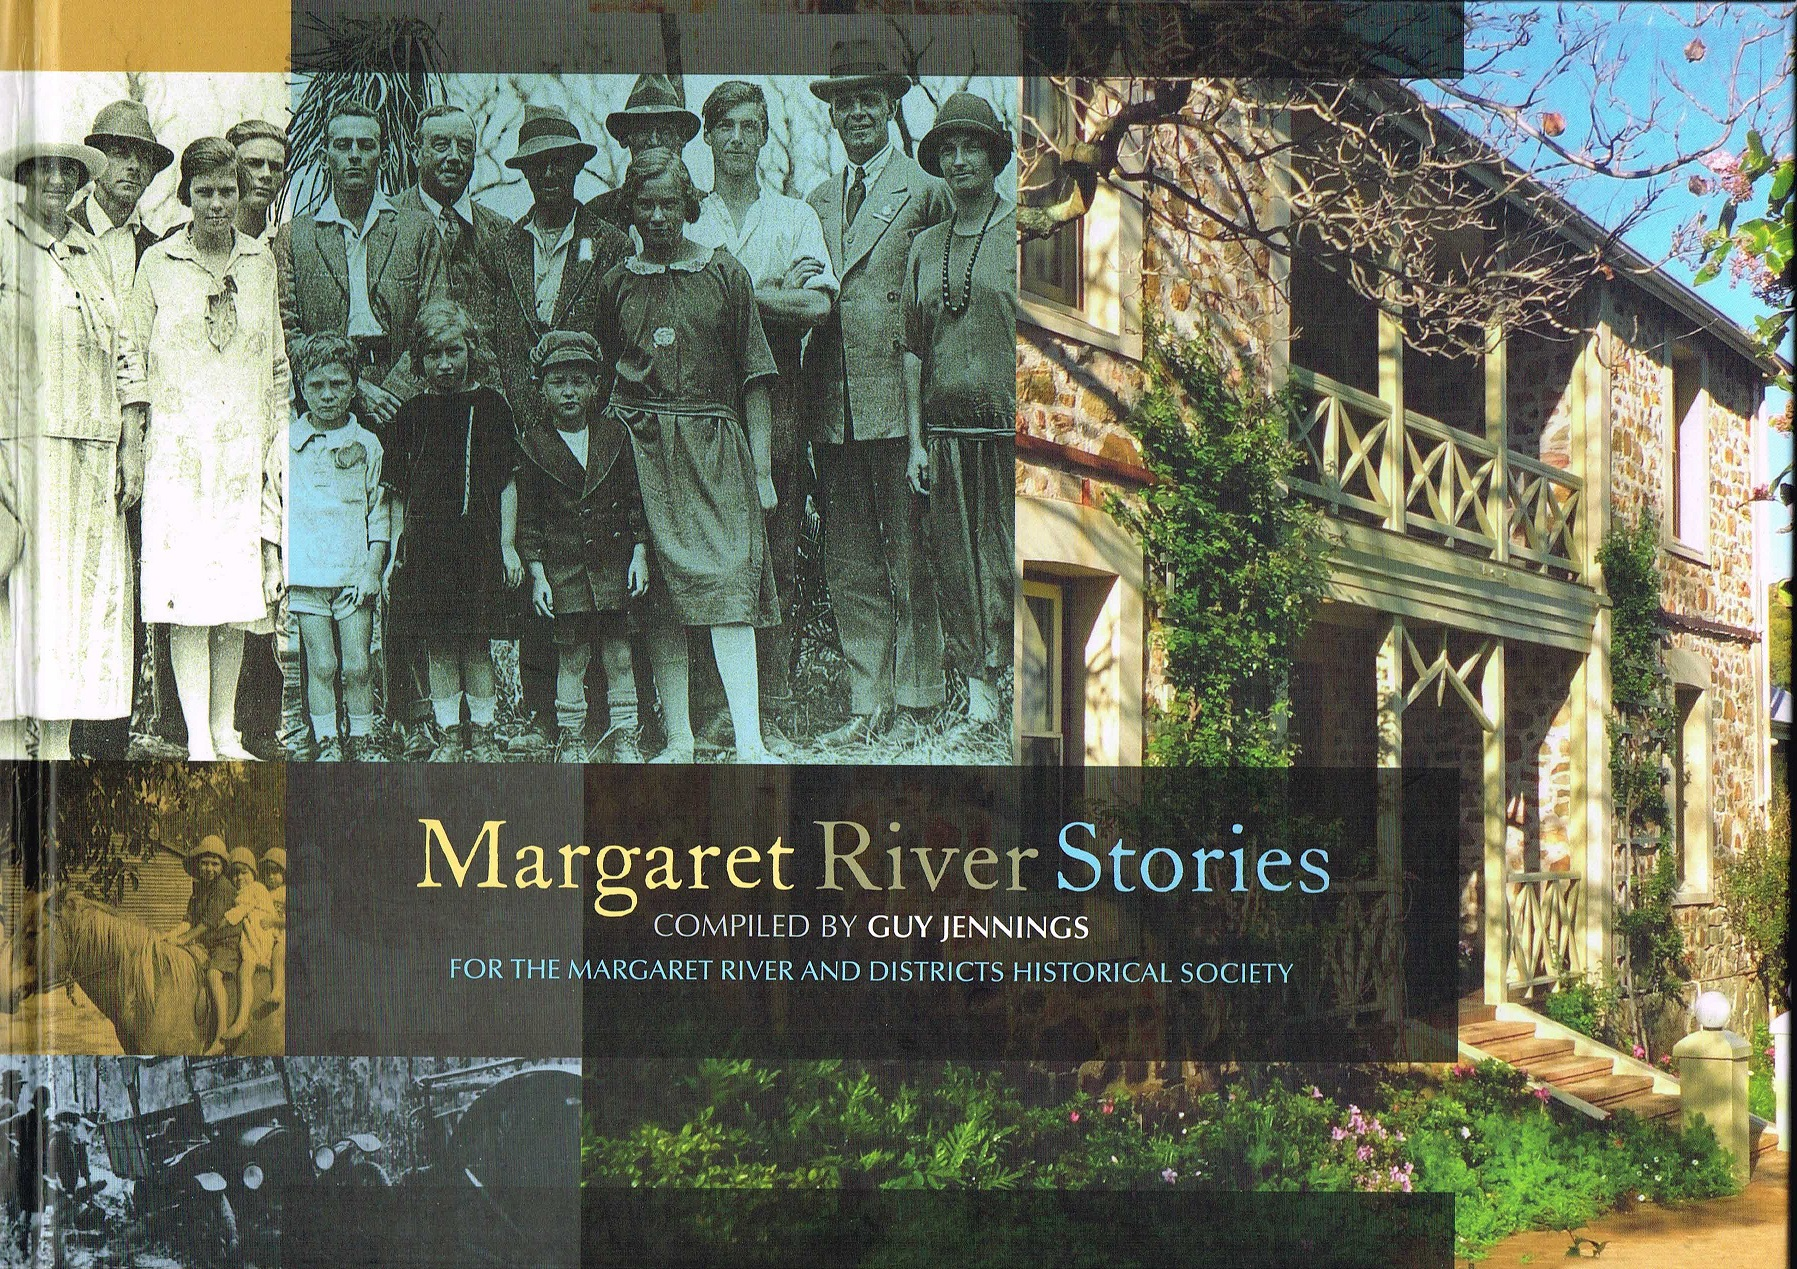 Margaret River Stories  Compiled by Guy Jennings, For the Margaret River and Districts Historical Society